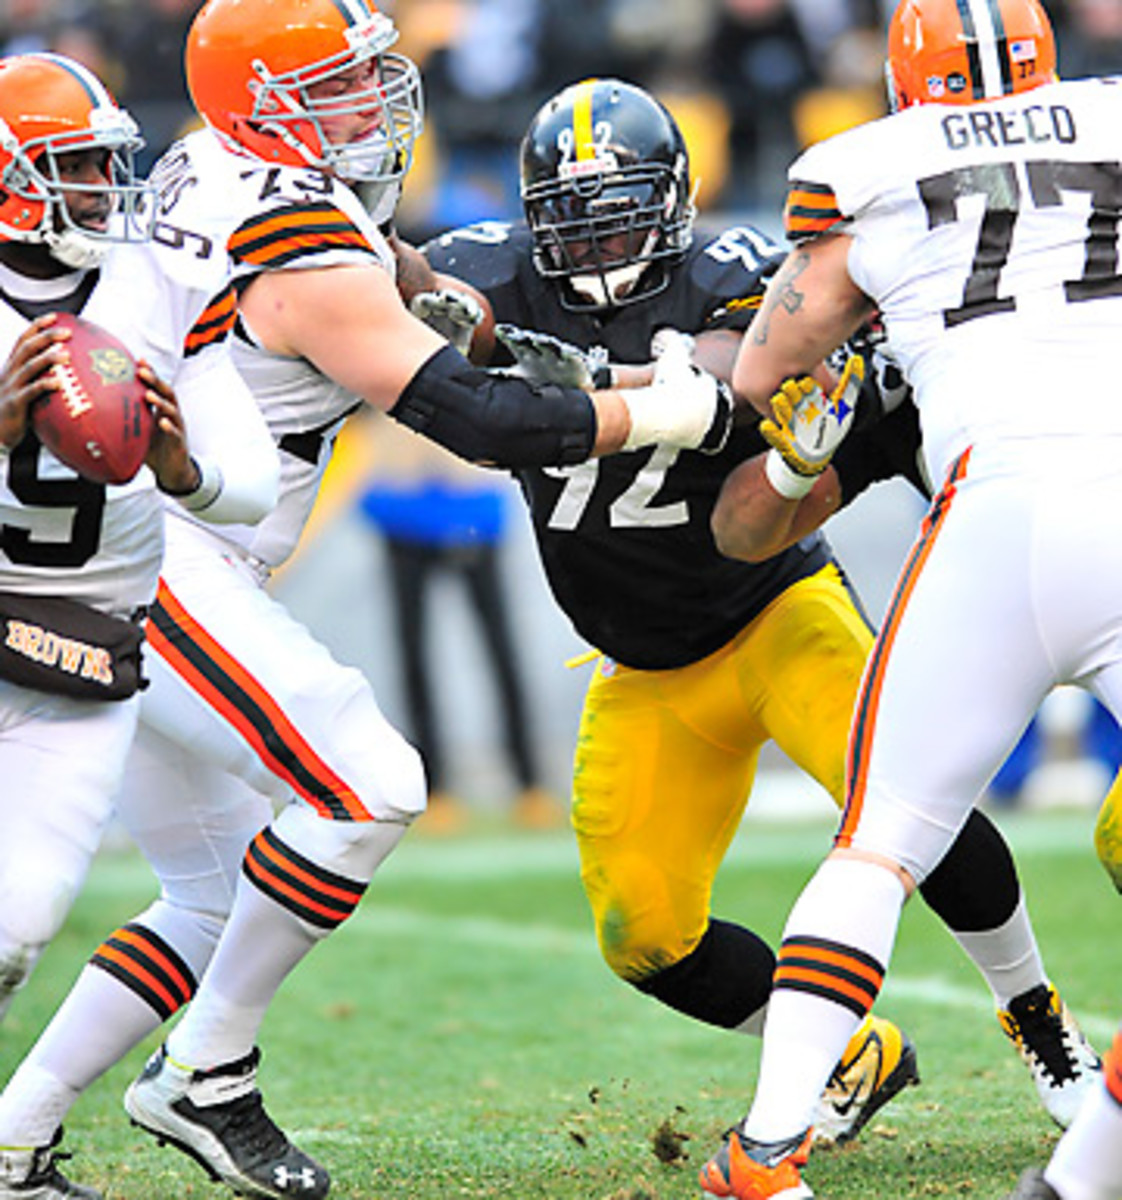 James Harrison averaged over 12 sacks a season from 2008-2010, but just 7.5 over the last two seasons. (David Dermer/Getty Images)